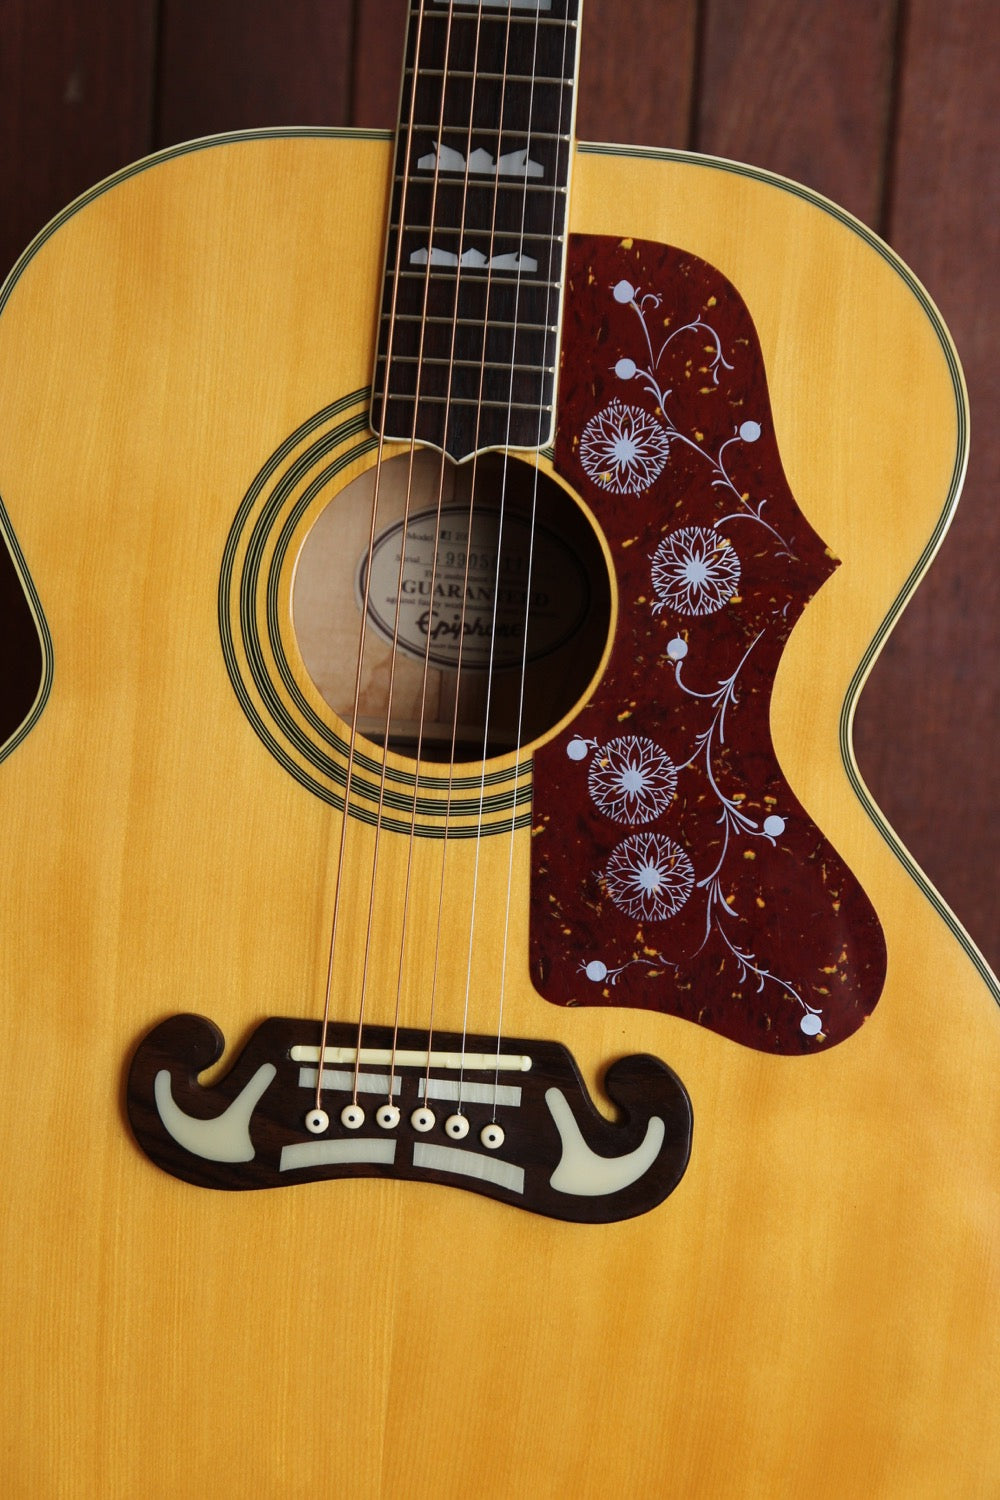 *NEW ARRIVAL* Furch D31 Dreadnought Rosewood Acoustic Guitar - The Rock Inn